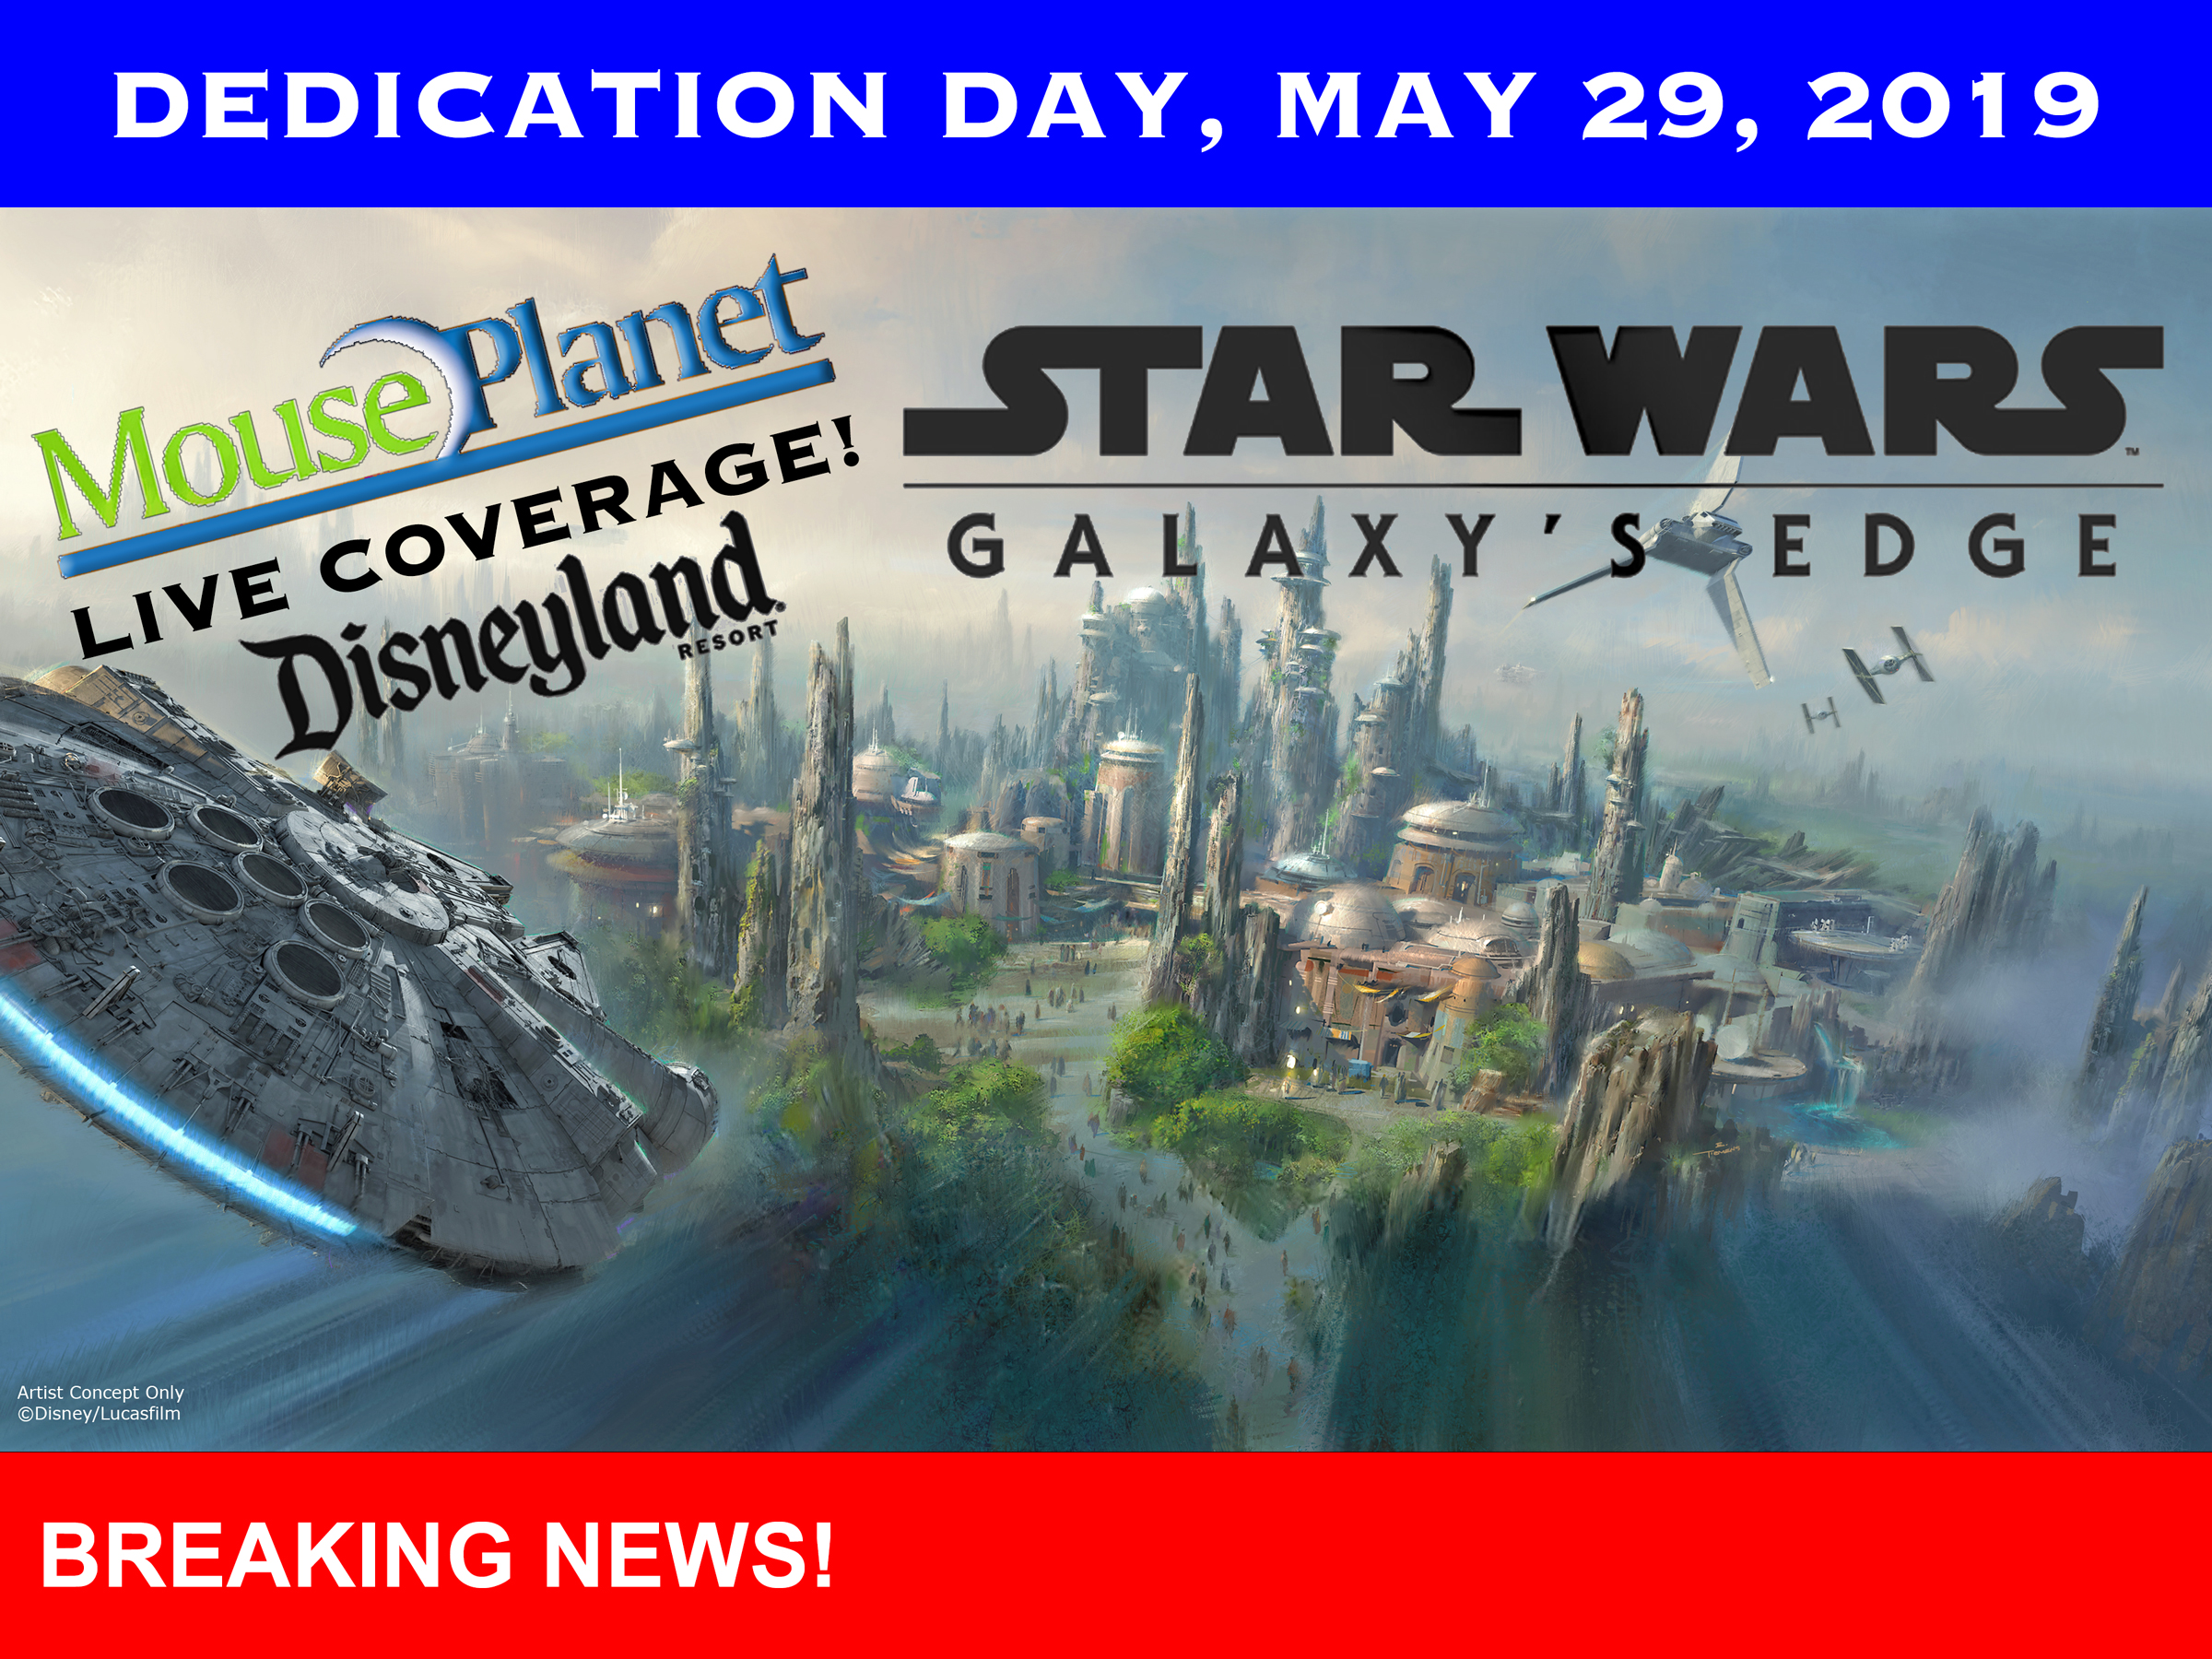 Disneyland's New 'Star Wars' Attraction Opens Friday